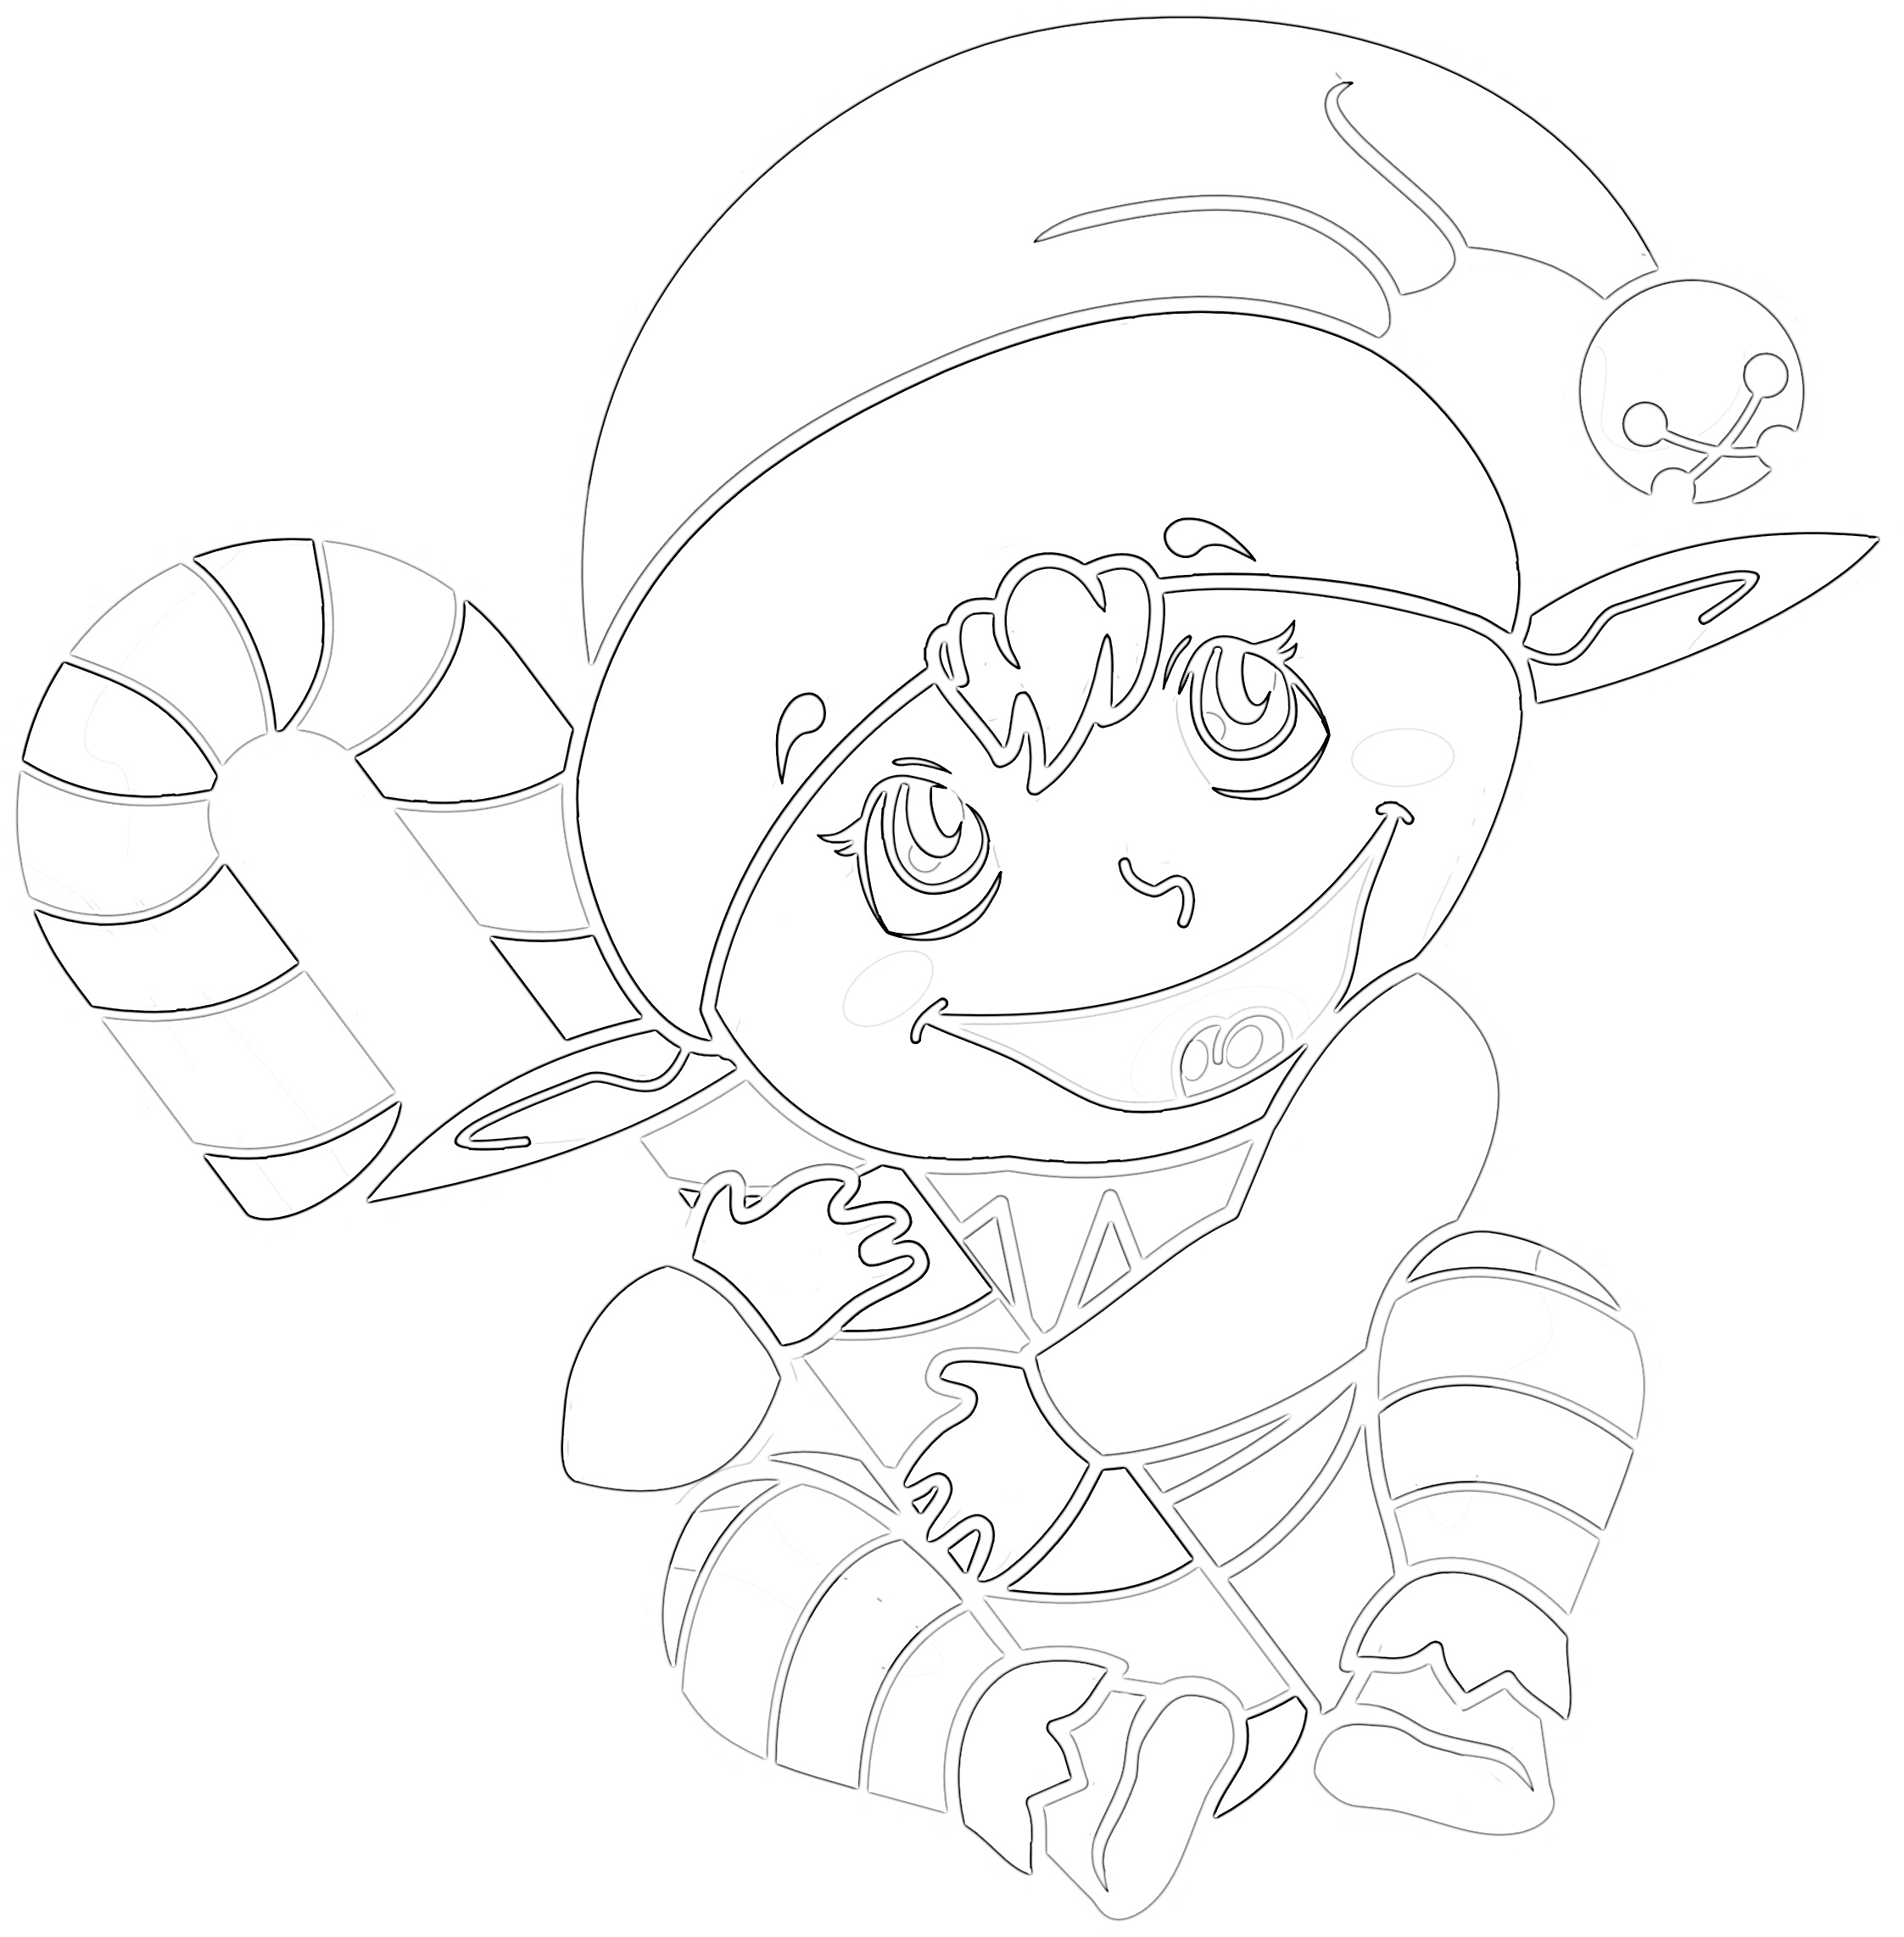 Tis' the Season Cute Elf Coloring Page